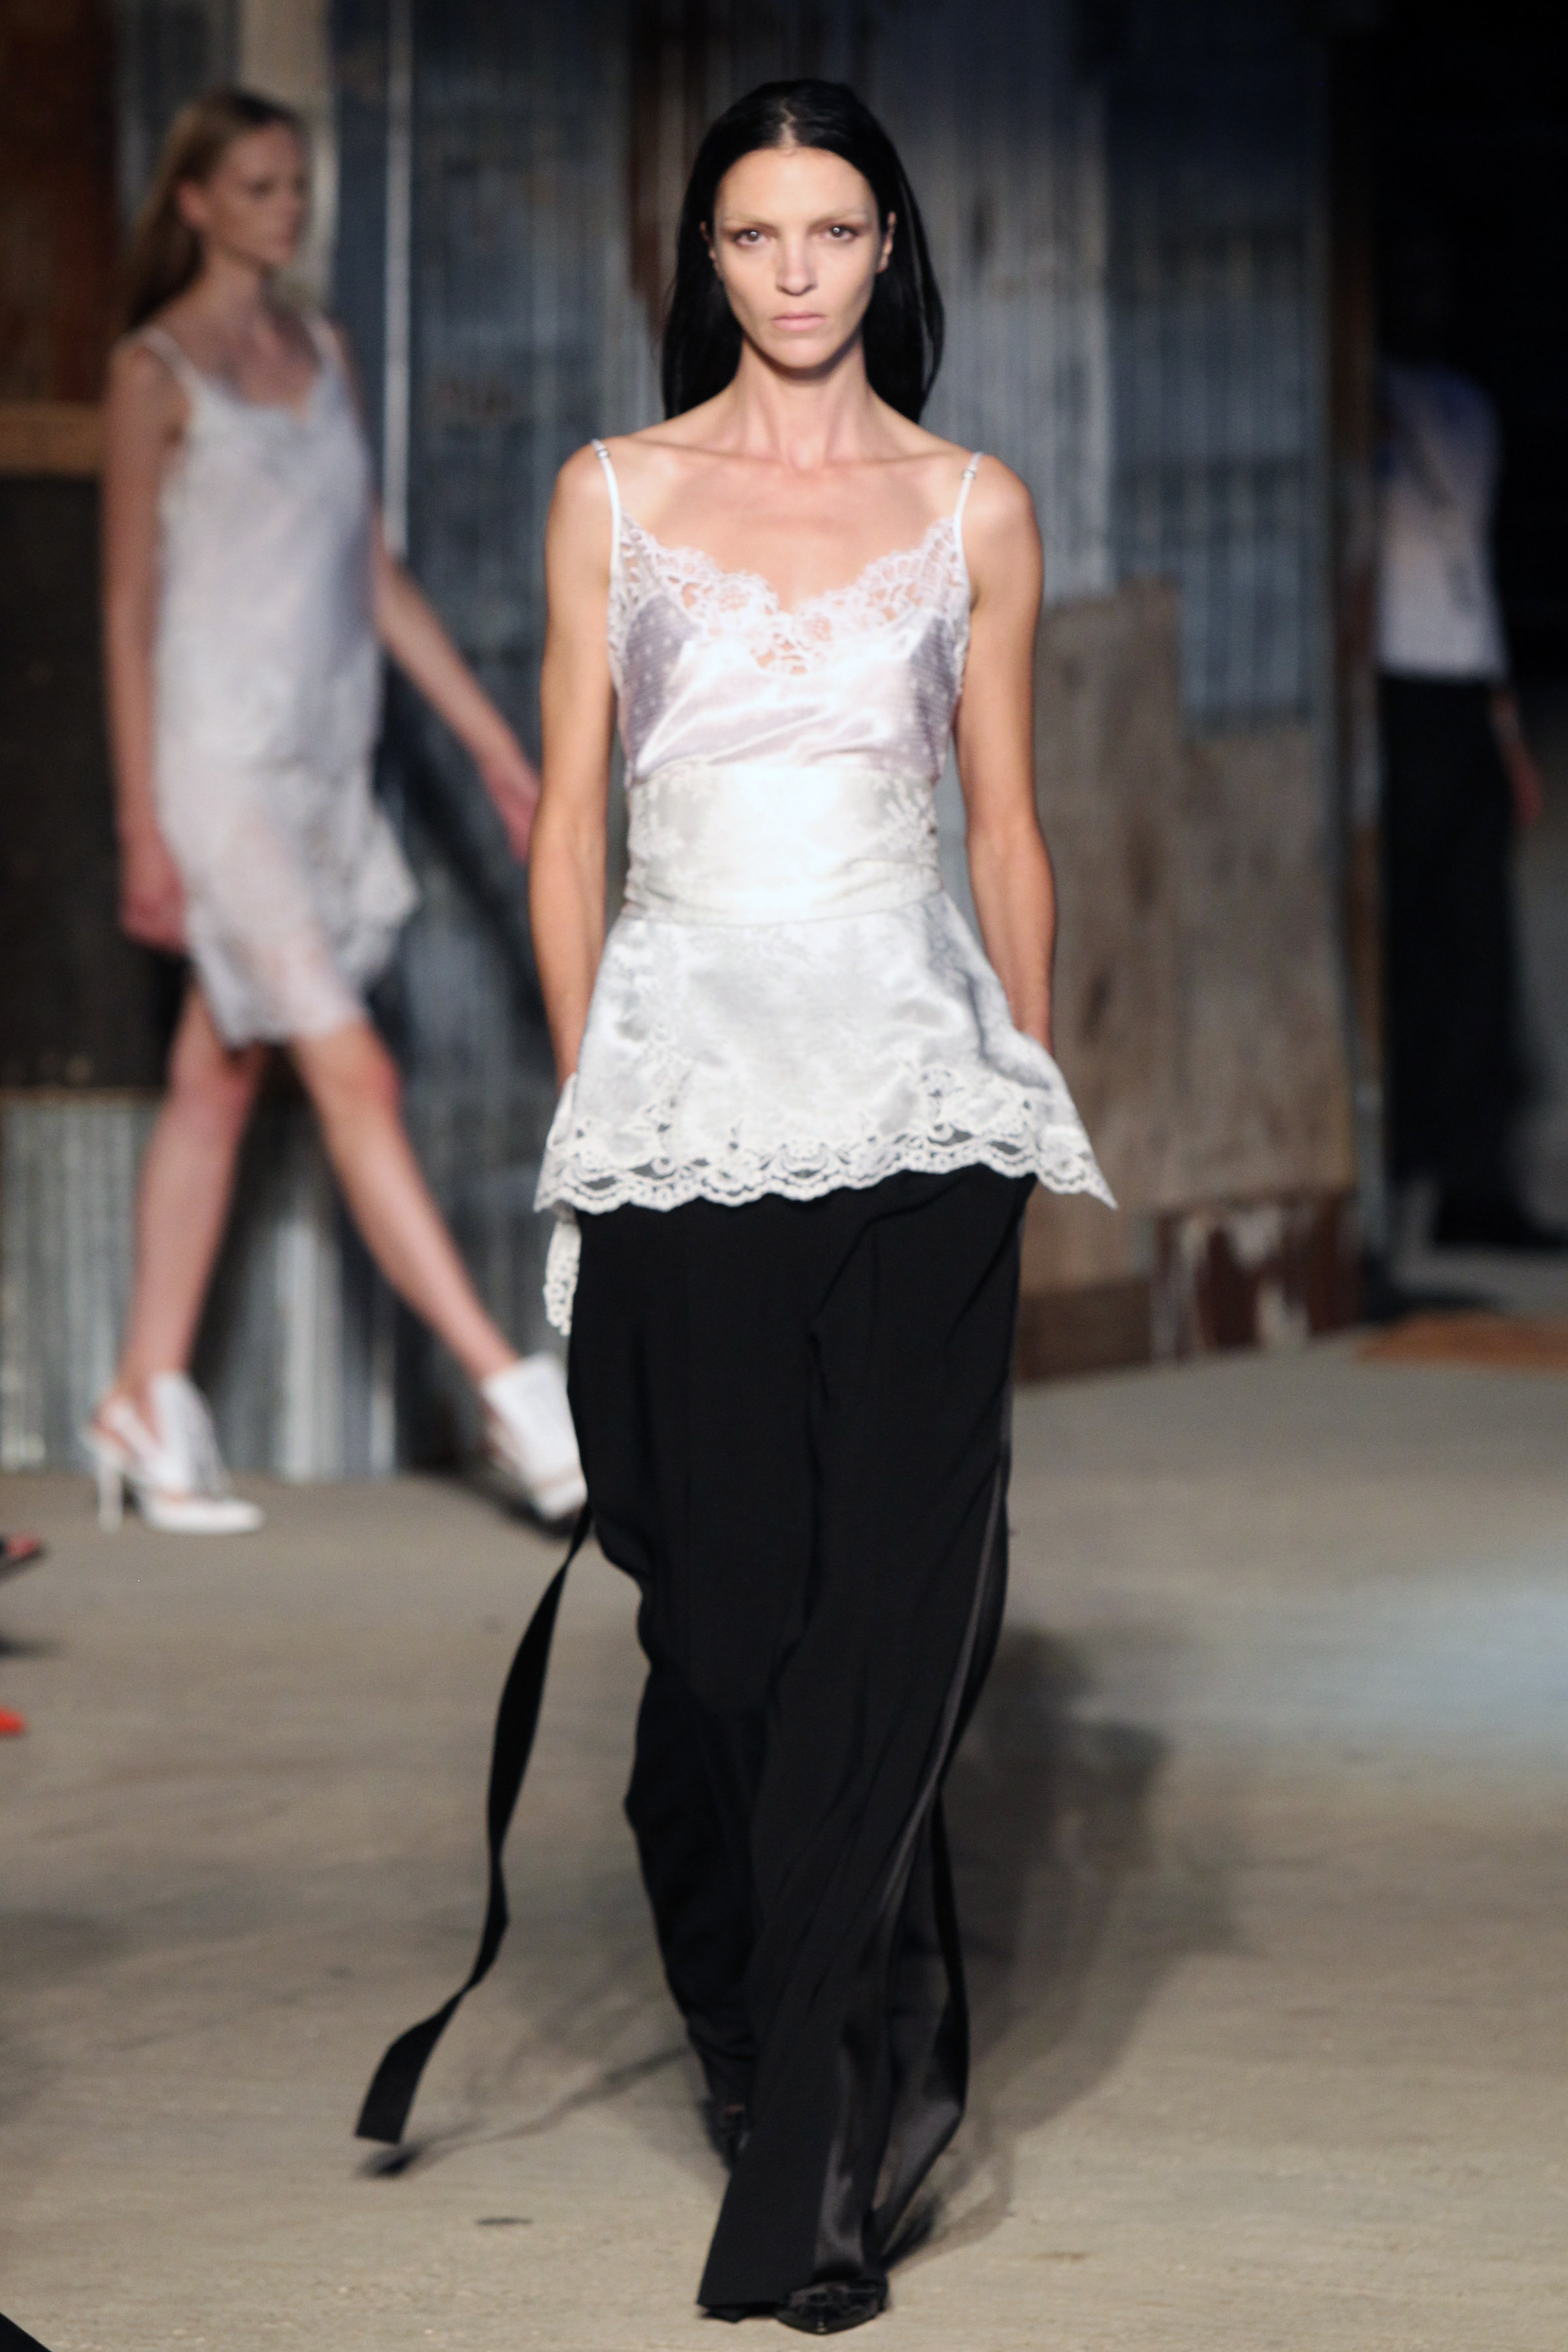 With creative director Riccardo Tisci deciding to show in New York instead of the label's home turf in Paris, Givenchy quickly become the most anticipated show at fashion week and it didn't disappoint. The monochromatic palette, feminine silhouettes and beautiful silk drapery will have you falling in love again and again and again.